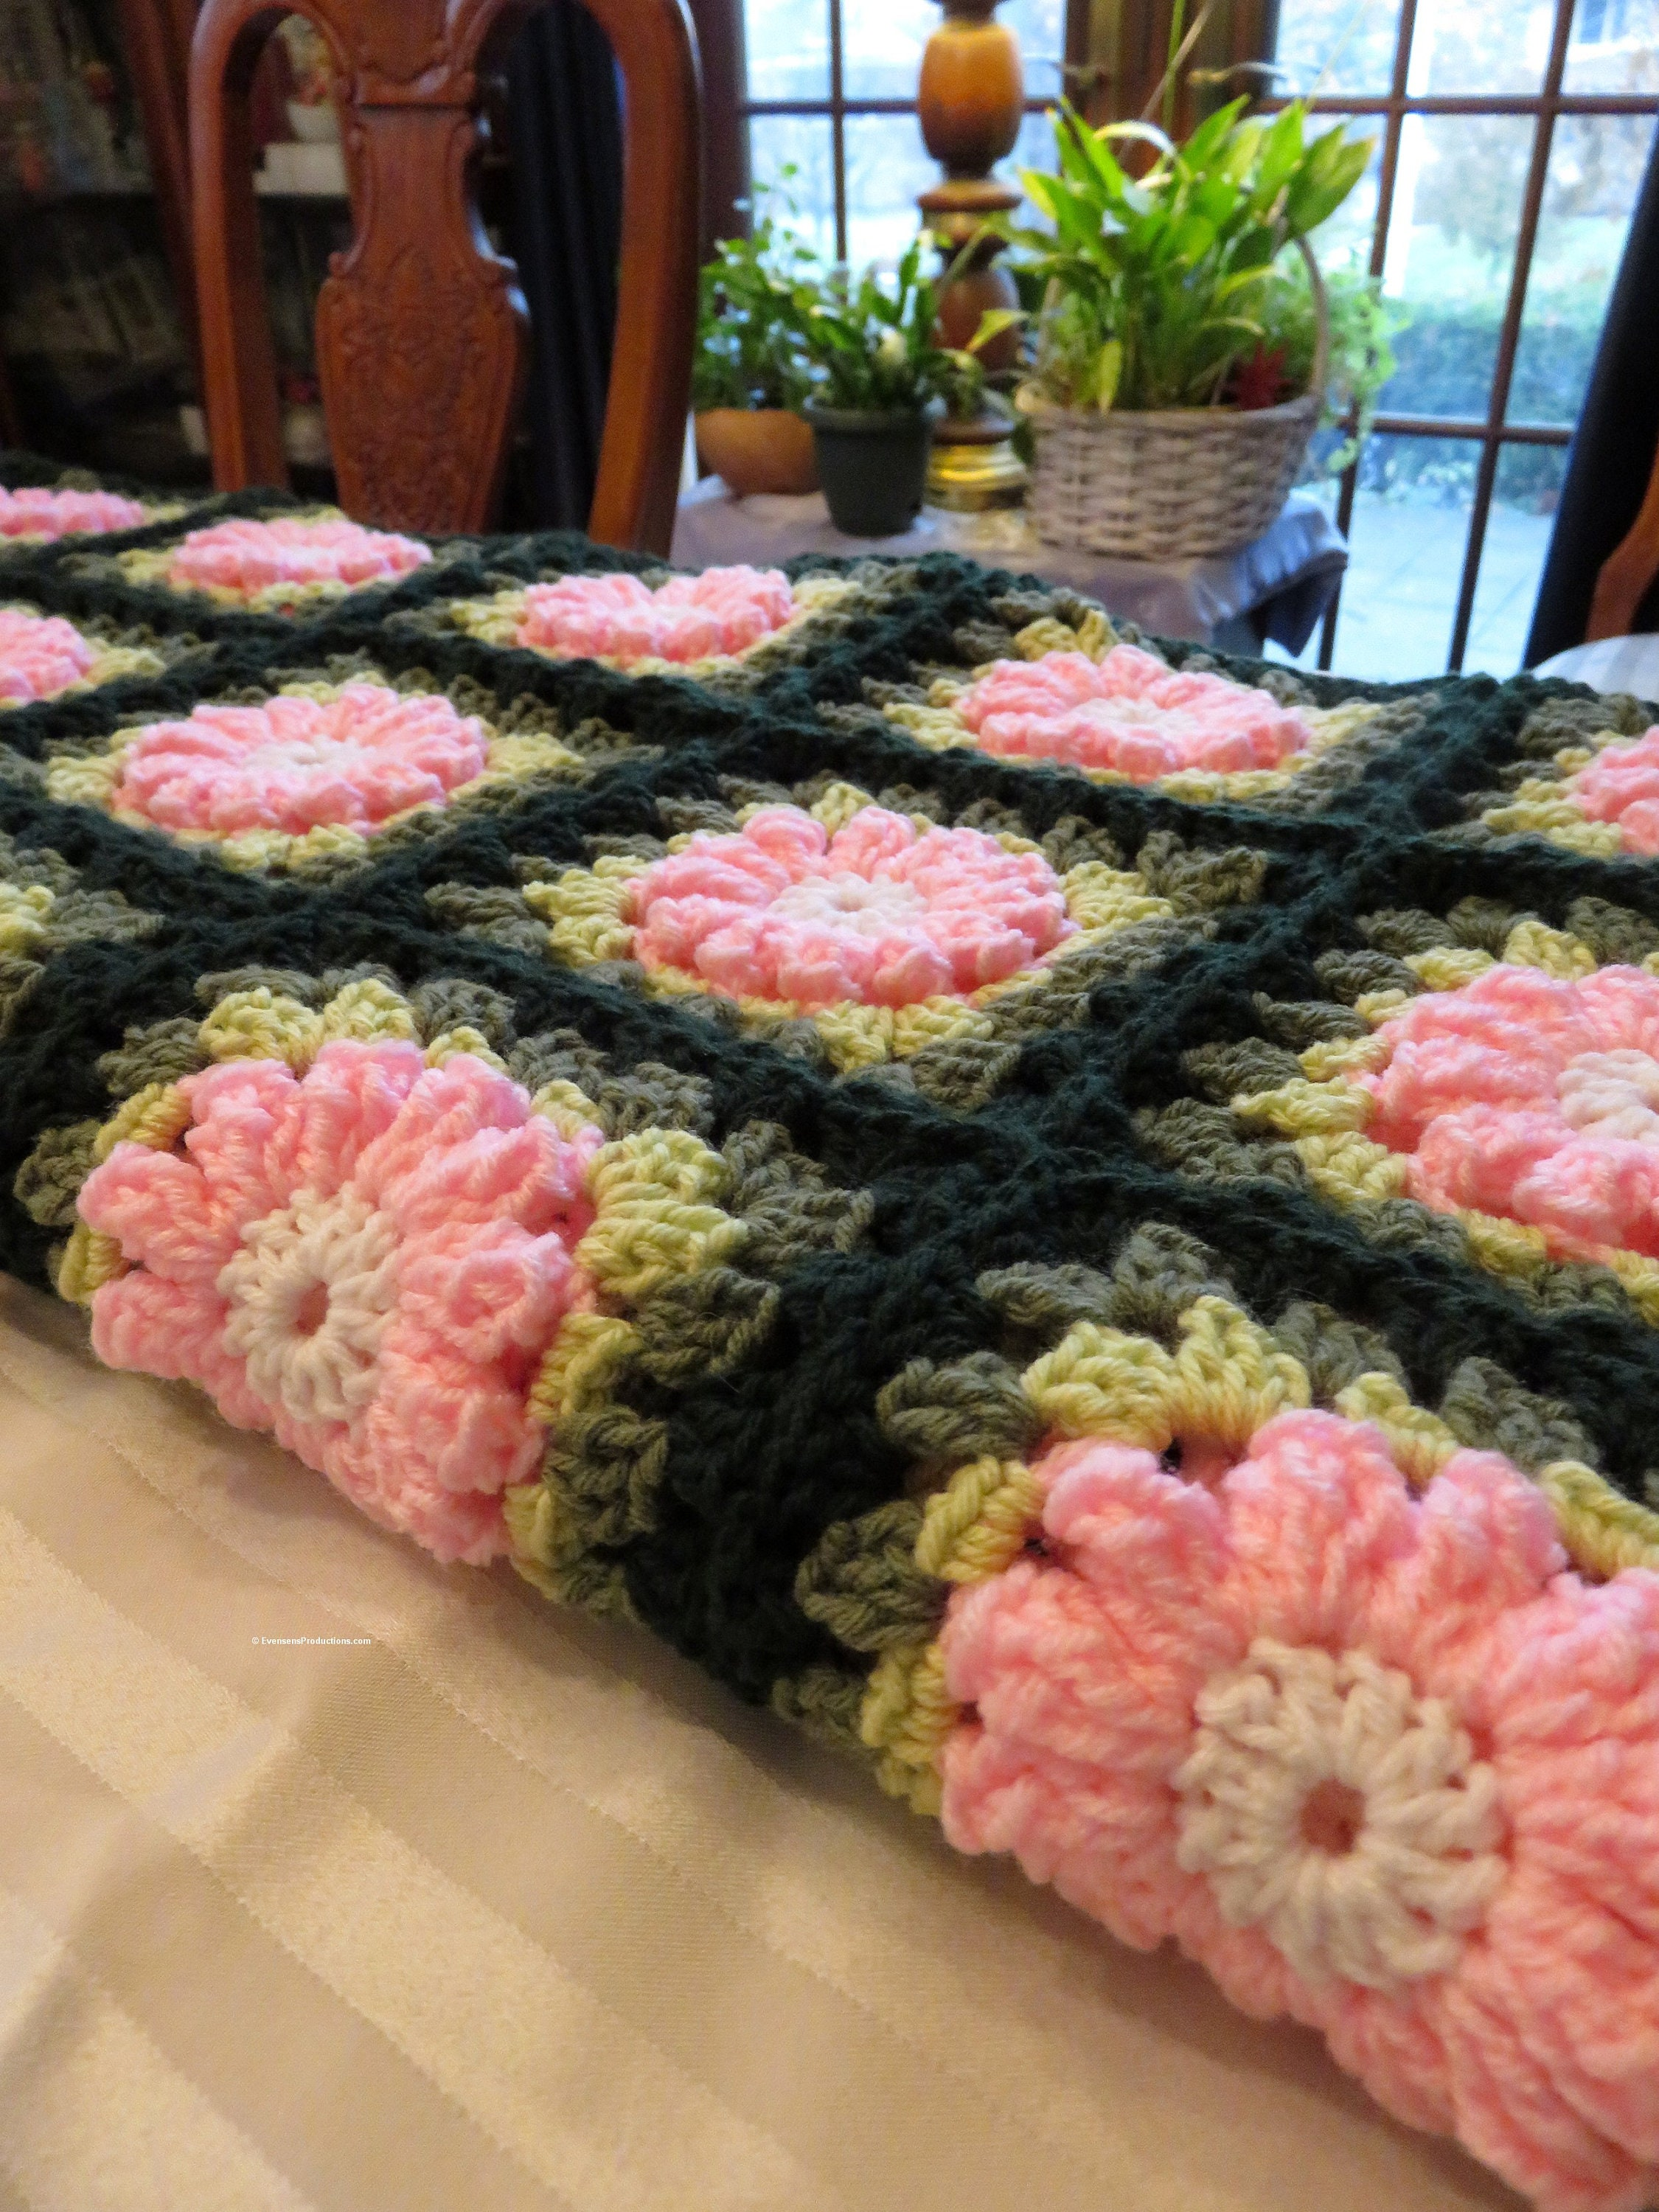 """Nouvelle grande couverture afghane - Pink Crocheted Raised Flowers on Green - Couch Bed Dorm Room Wedding 72""""x62"""" - Designed Hand Made USA Item 5283"""